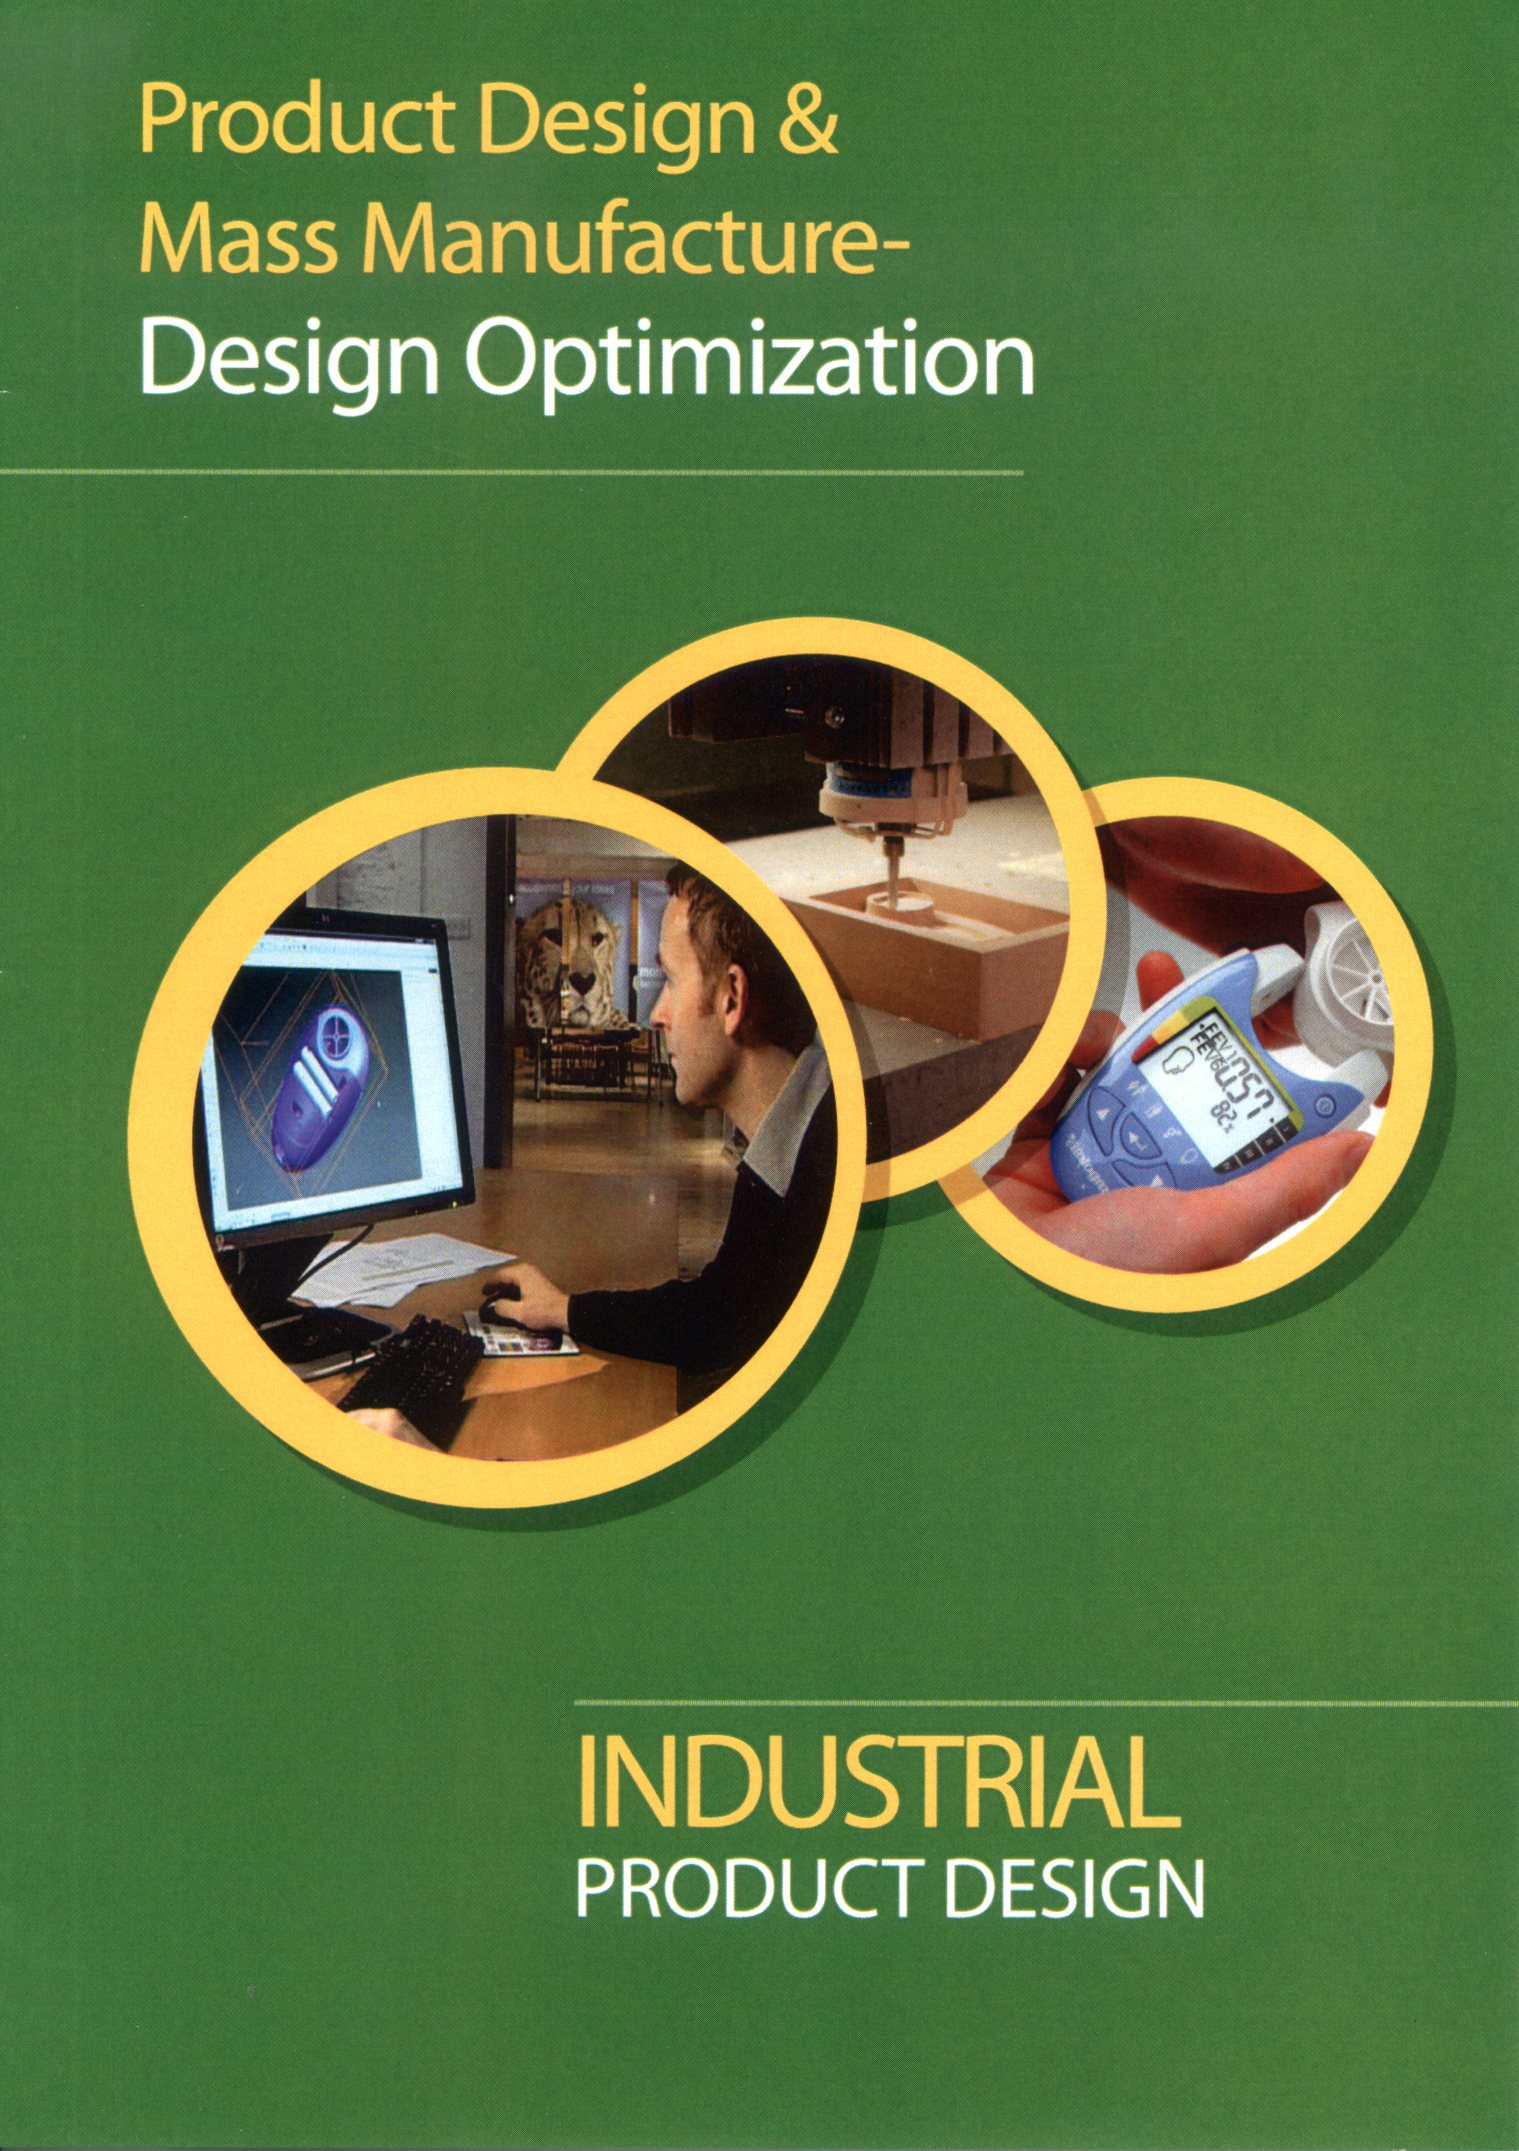 Product design & mass manufacture design optimization = 商品最佳化設計之成本 : 美學與實踐